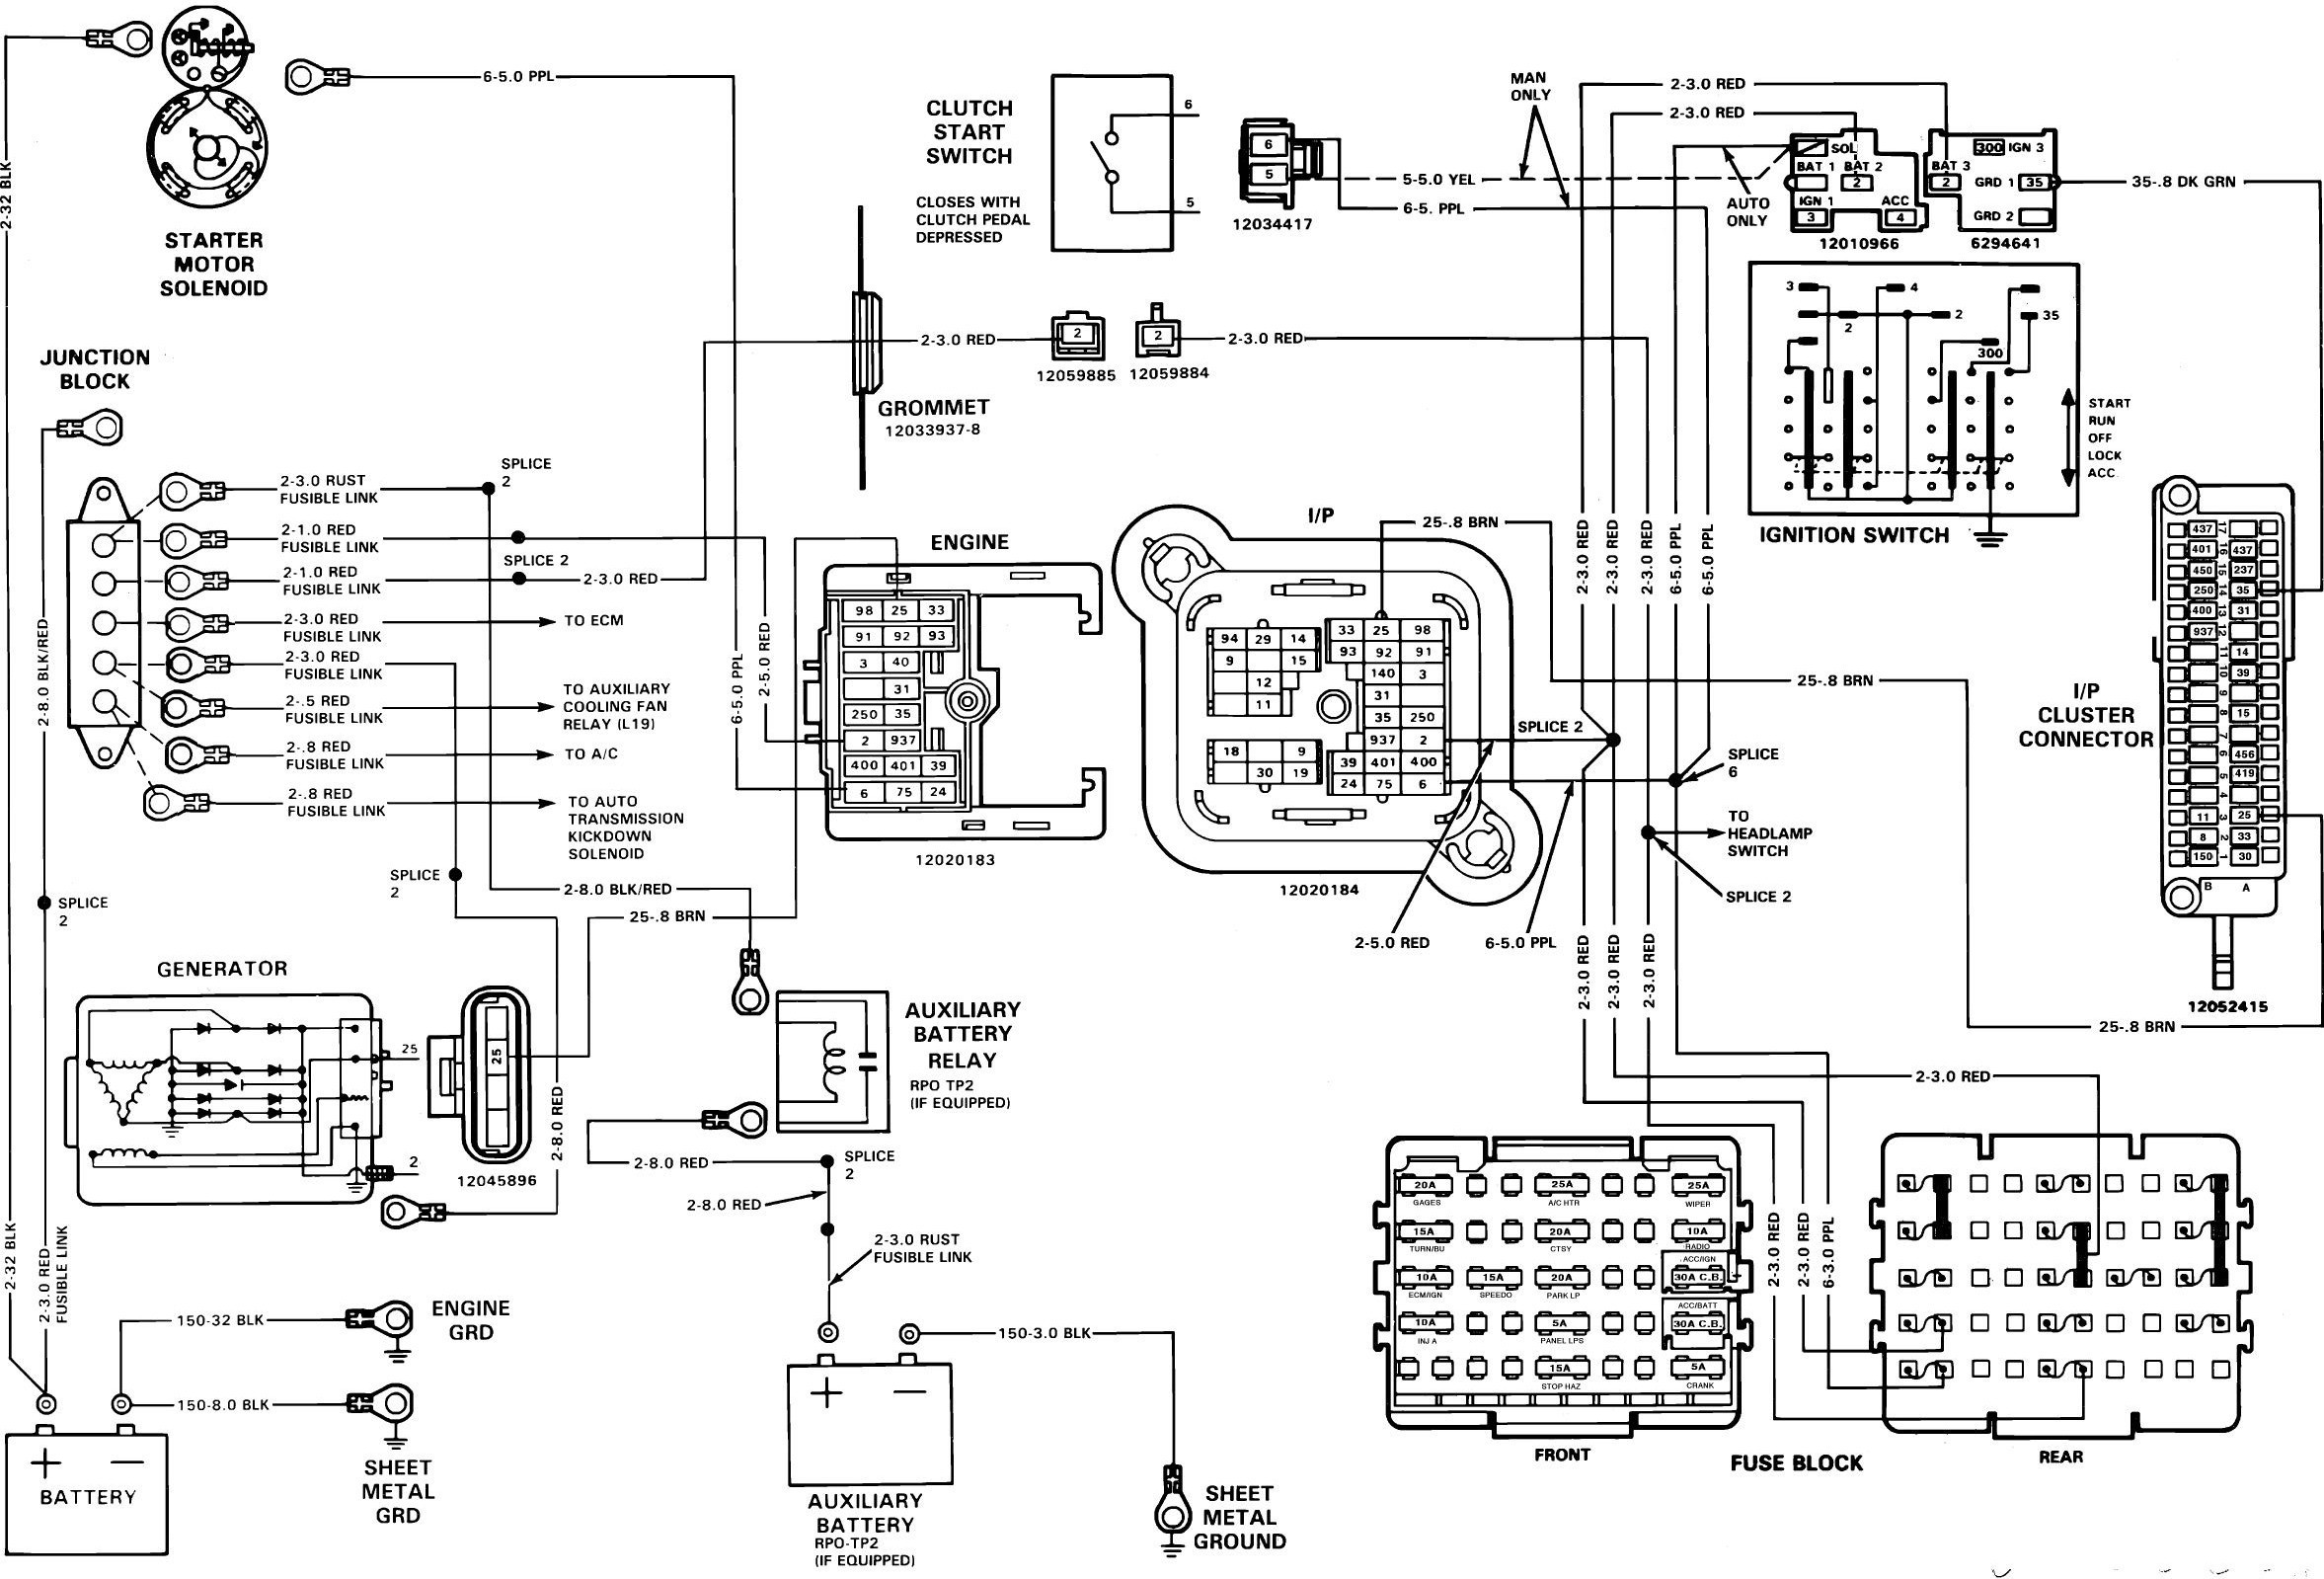 wiring diagram for 1989 chevy 2500 wiring diagram rh schilderbosch nl